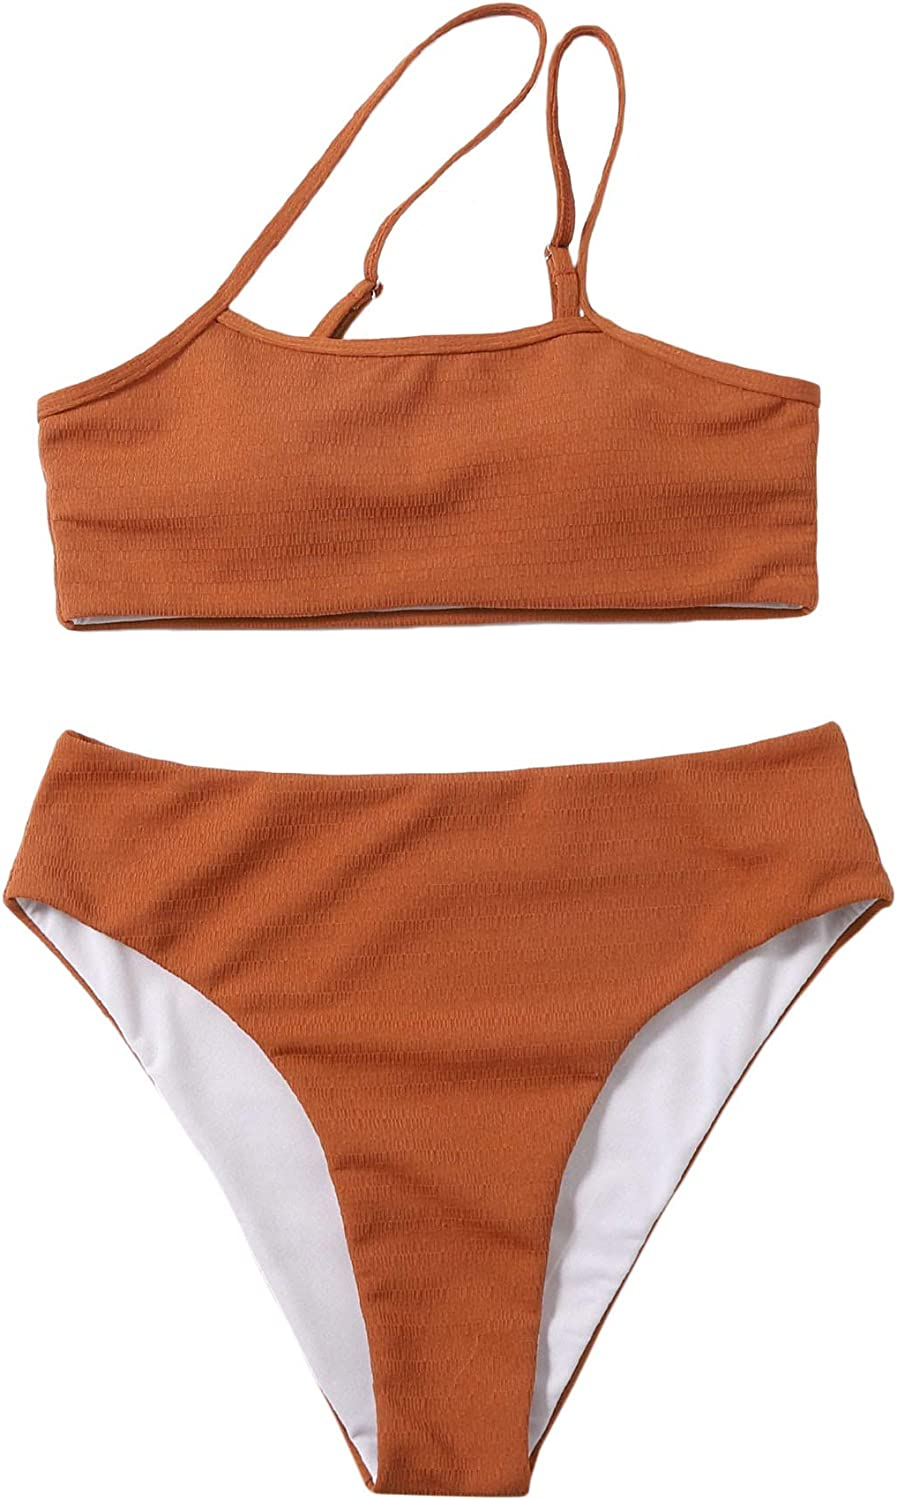 SOLY HUX Women's One Shoulder High Waisted Bikini Bathing Suits Two Piece Swimsuits